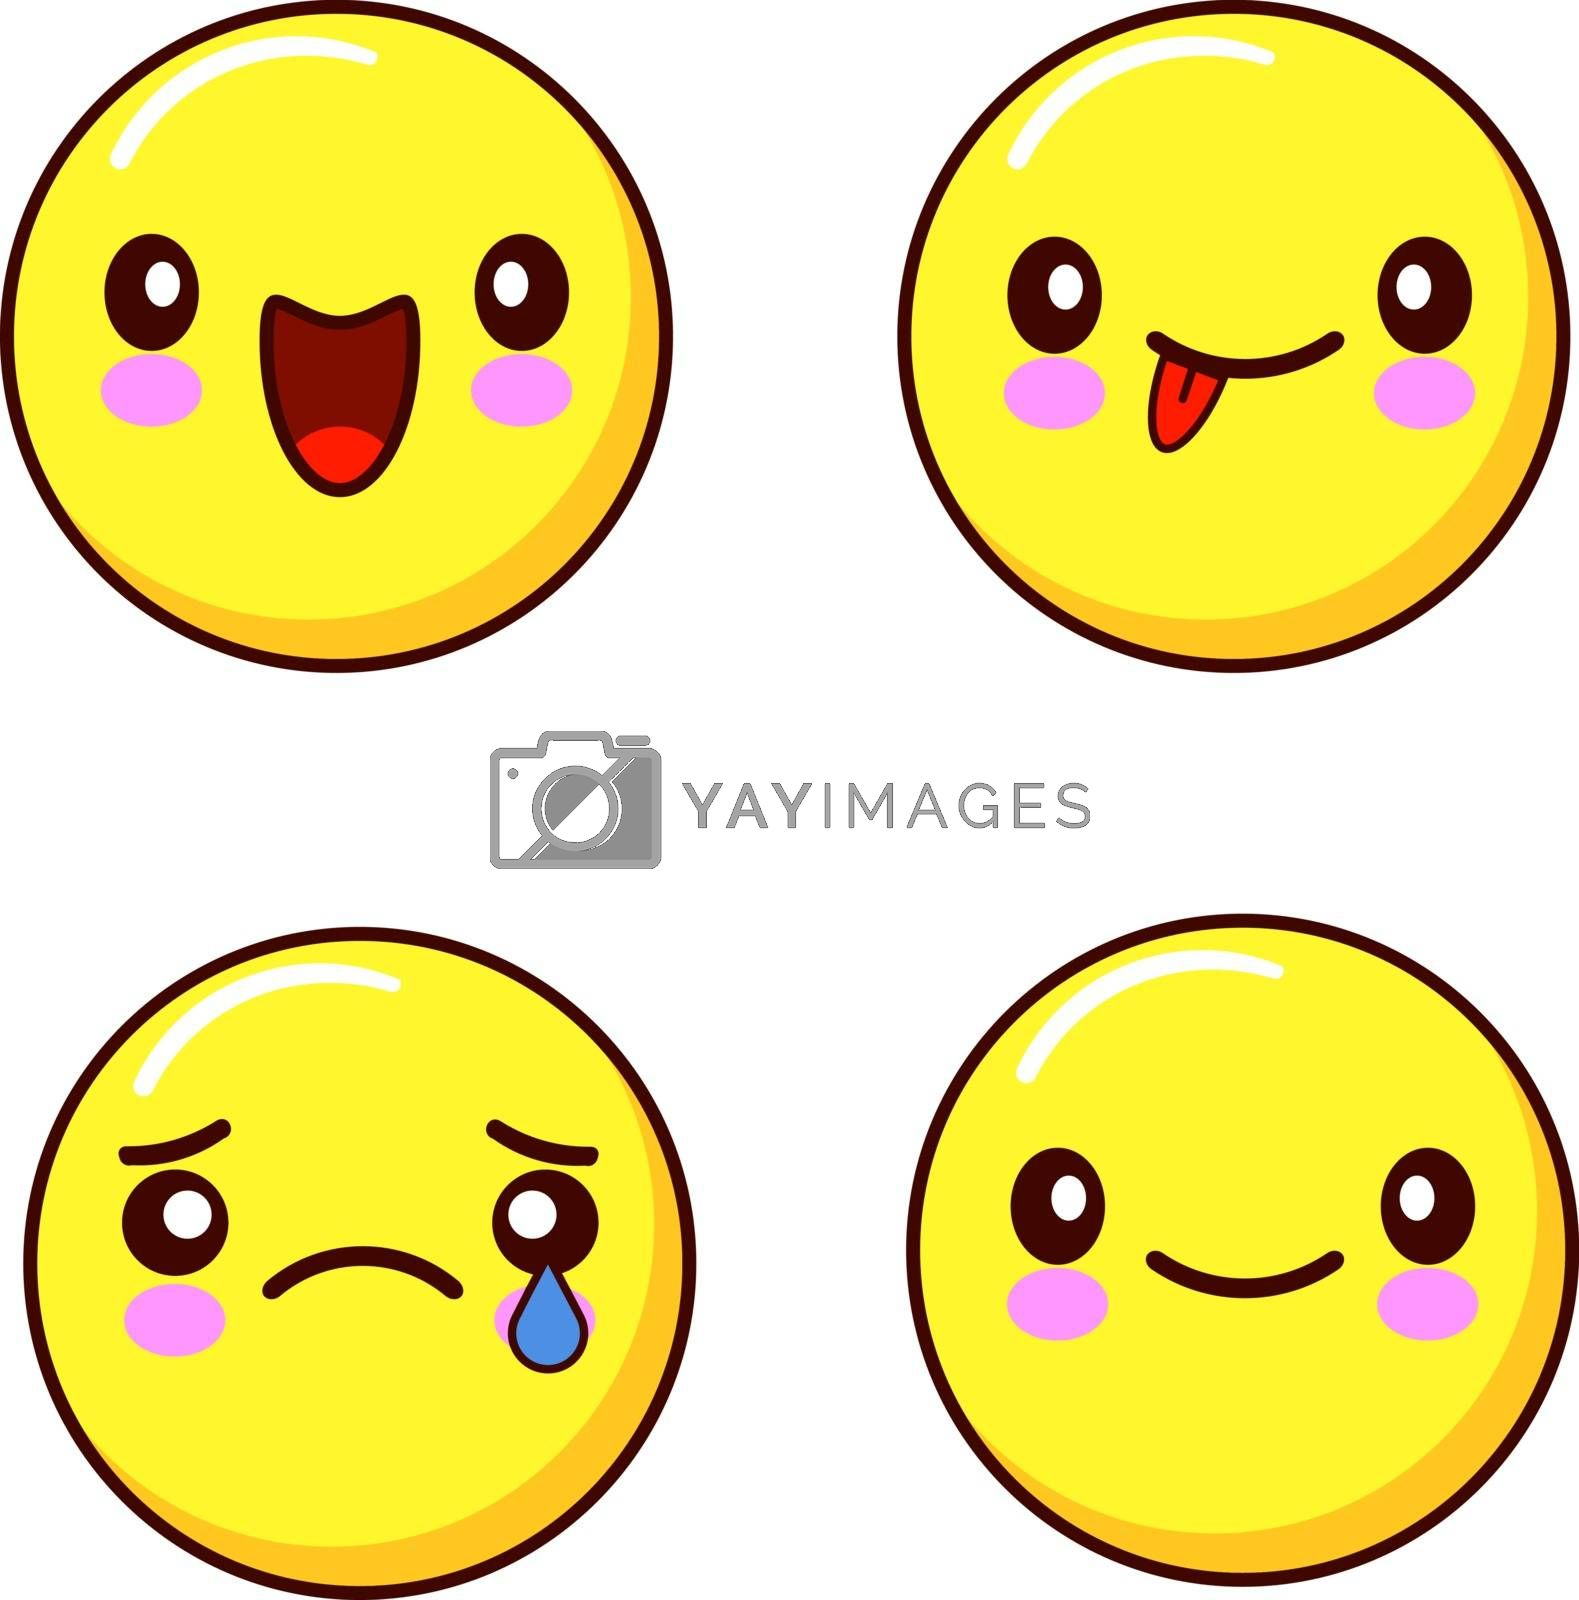 Royalty free image of Set of smiley face icons or yellow emoticons with different facial expressions i isolated in white background. Flat design Vector by Alxyzt